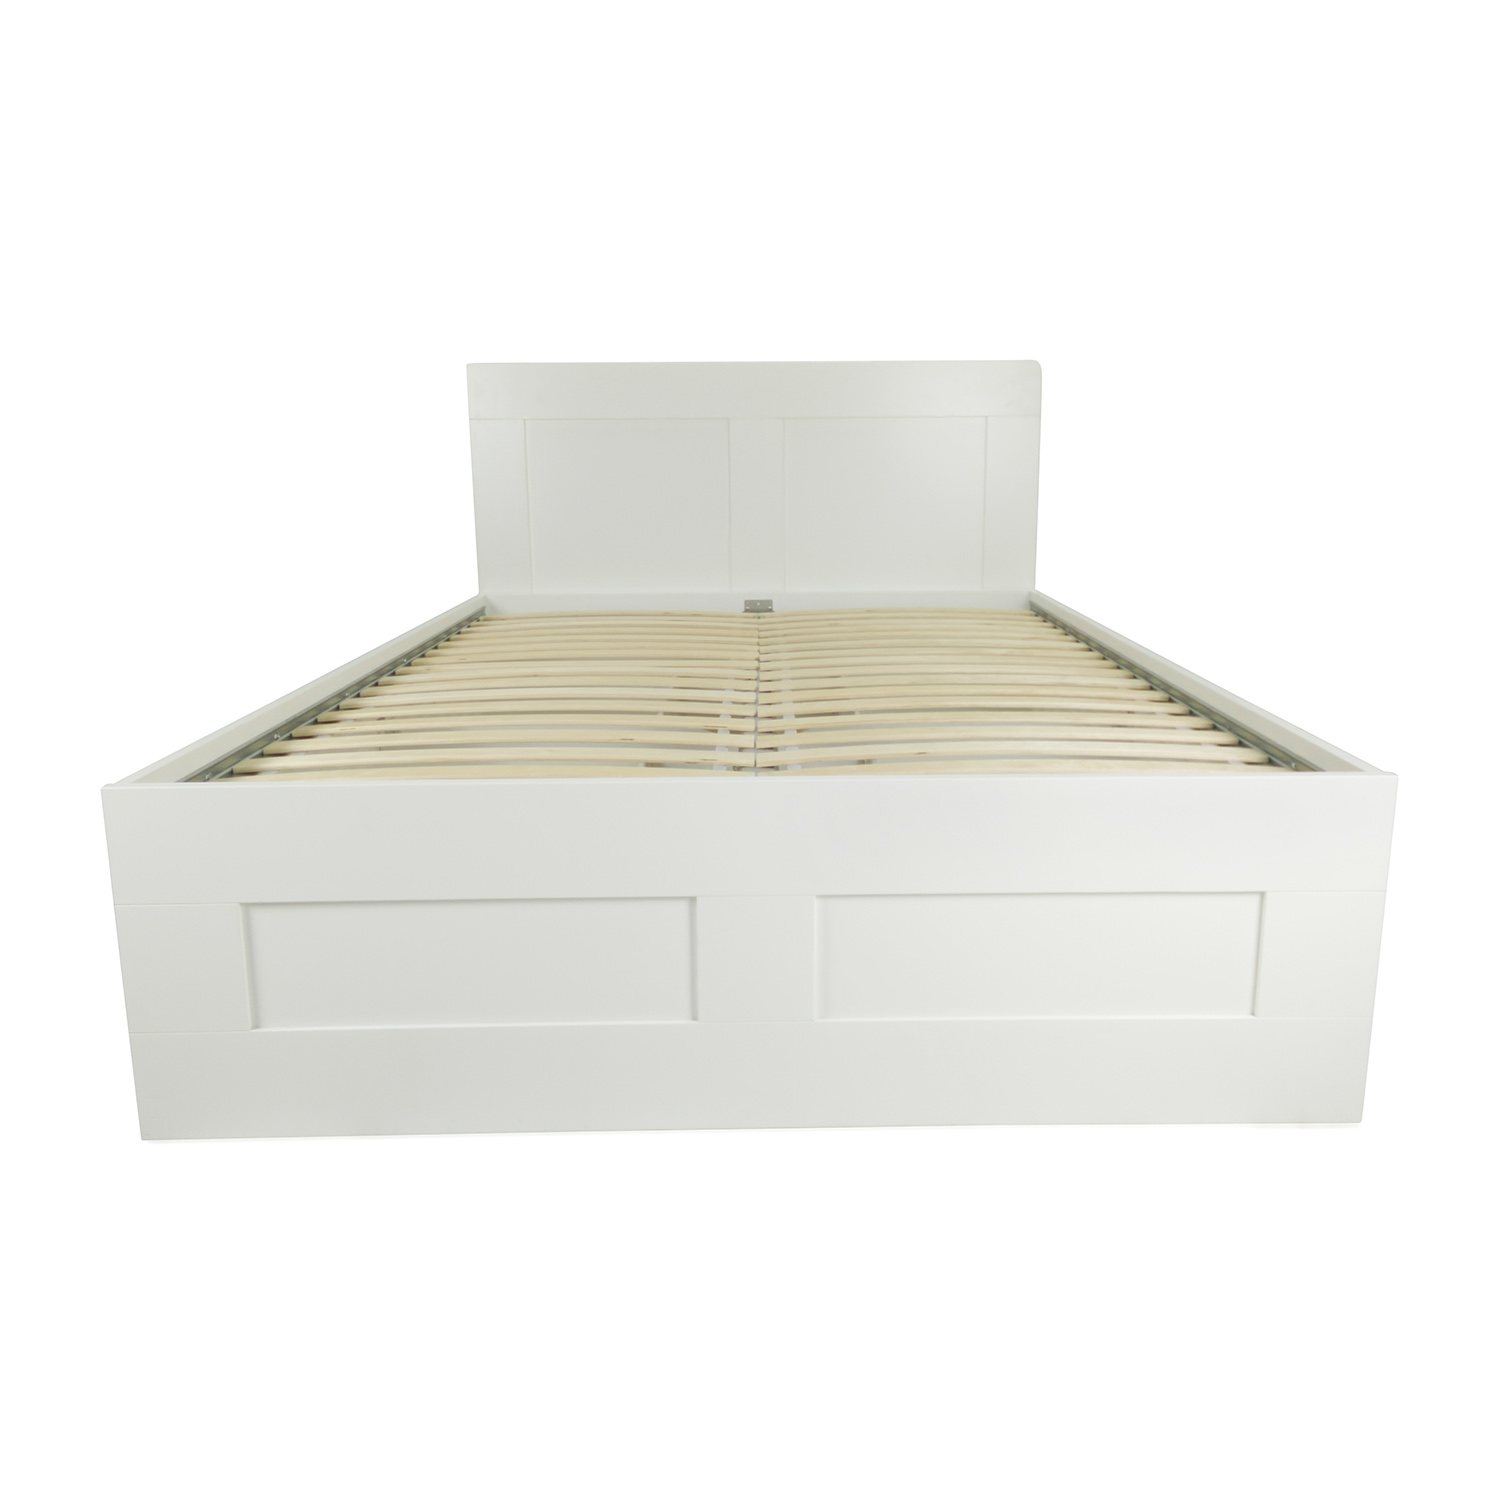 Ikea Queen Size Bed Frame Beds